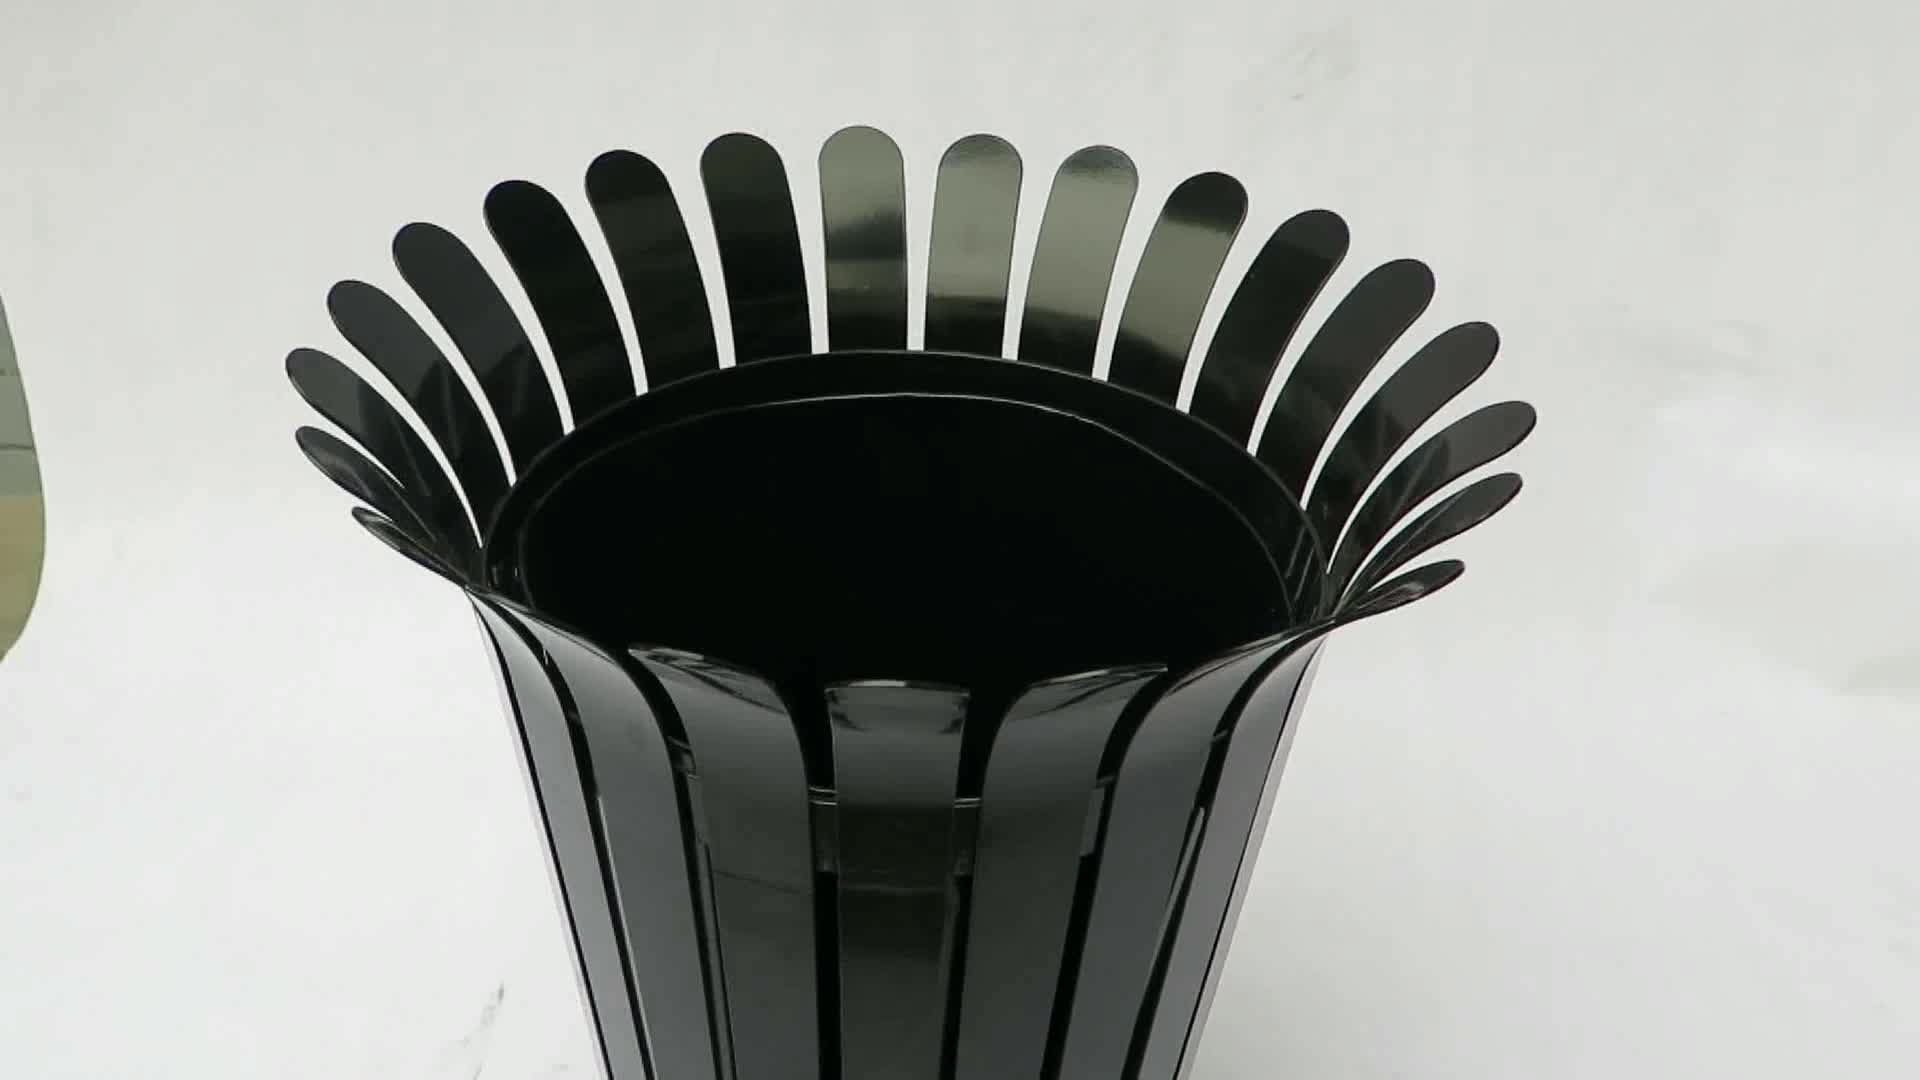 Outdoor Public Steel Garbage Can Park Street Metal Recycling Waste Black Trash Bin